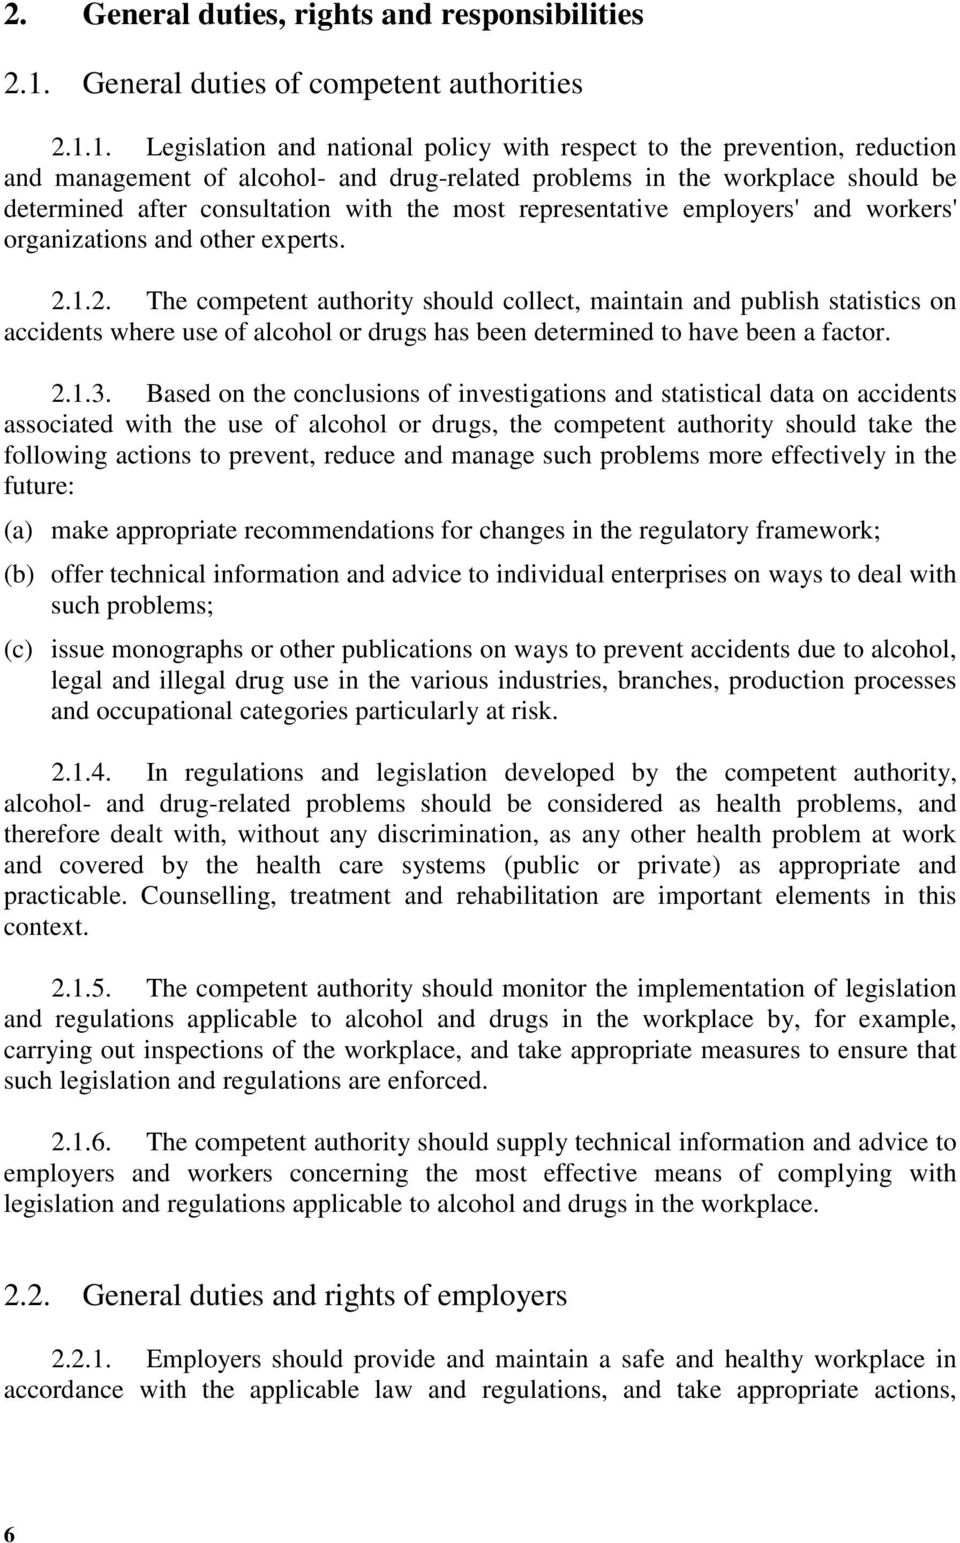 1. Legislation and national policy with respect to the prevention, reduction and management of alcohol- and drug-related problems in the workplace should be determined after consultation with the